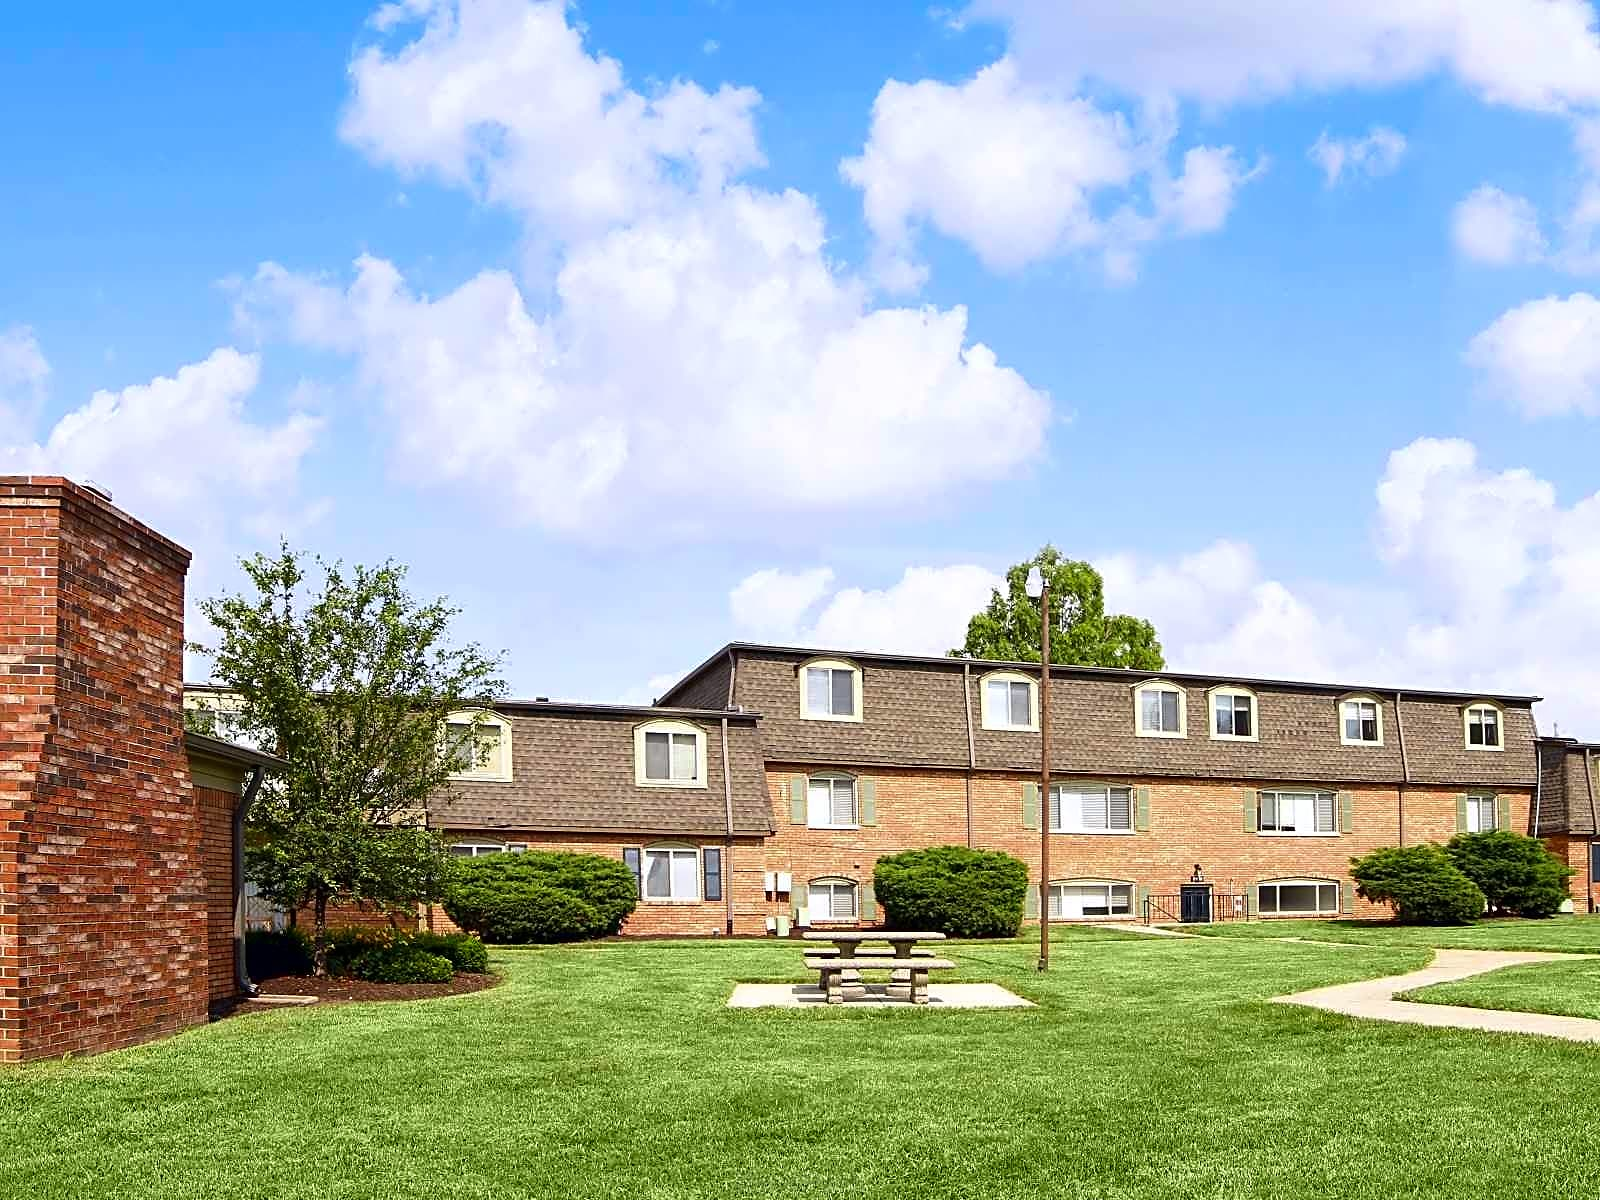 Awesome indianapolis in houses for rent apartments page 12 for 3 bedroom houses for rent in indianapolis indiana